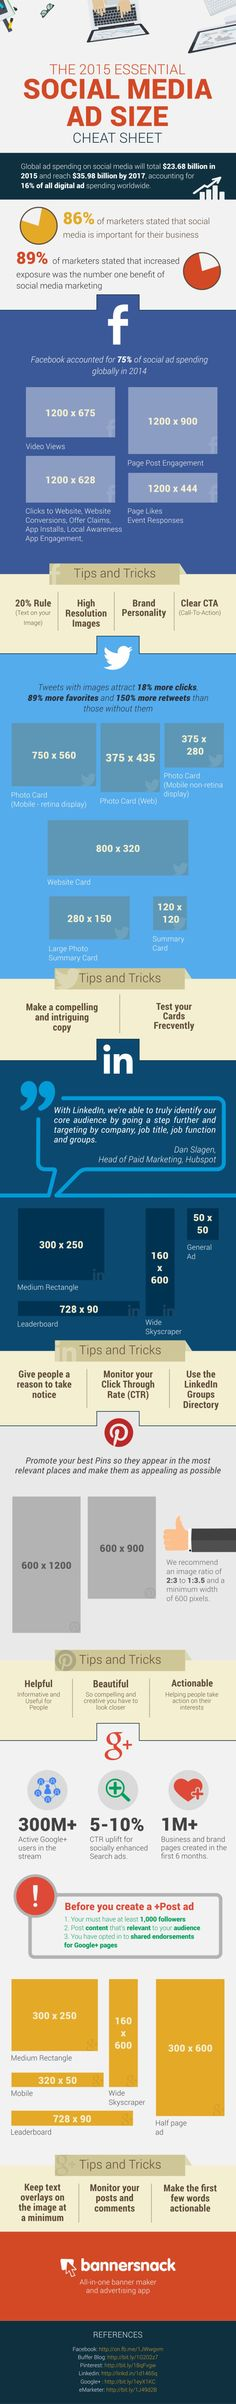 Infographic: The 2015 essential social media ad size cheat sheet Le Social, Social Media Content, Social Media Tips, Social Networks, Facebook Marketing, Marketing Digital, Business Marketing, Social Media Marketing, Facebook Business